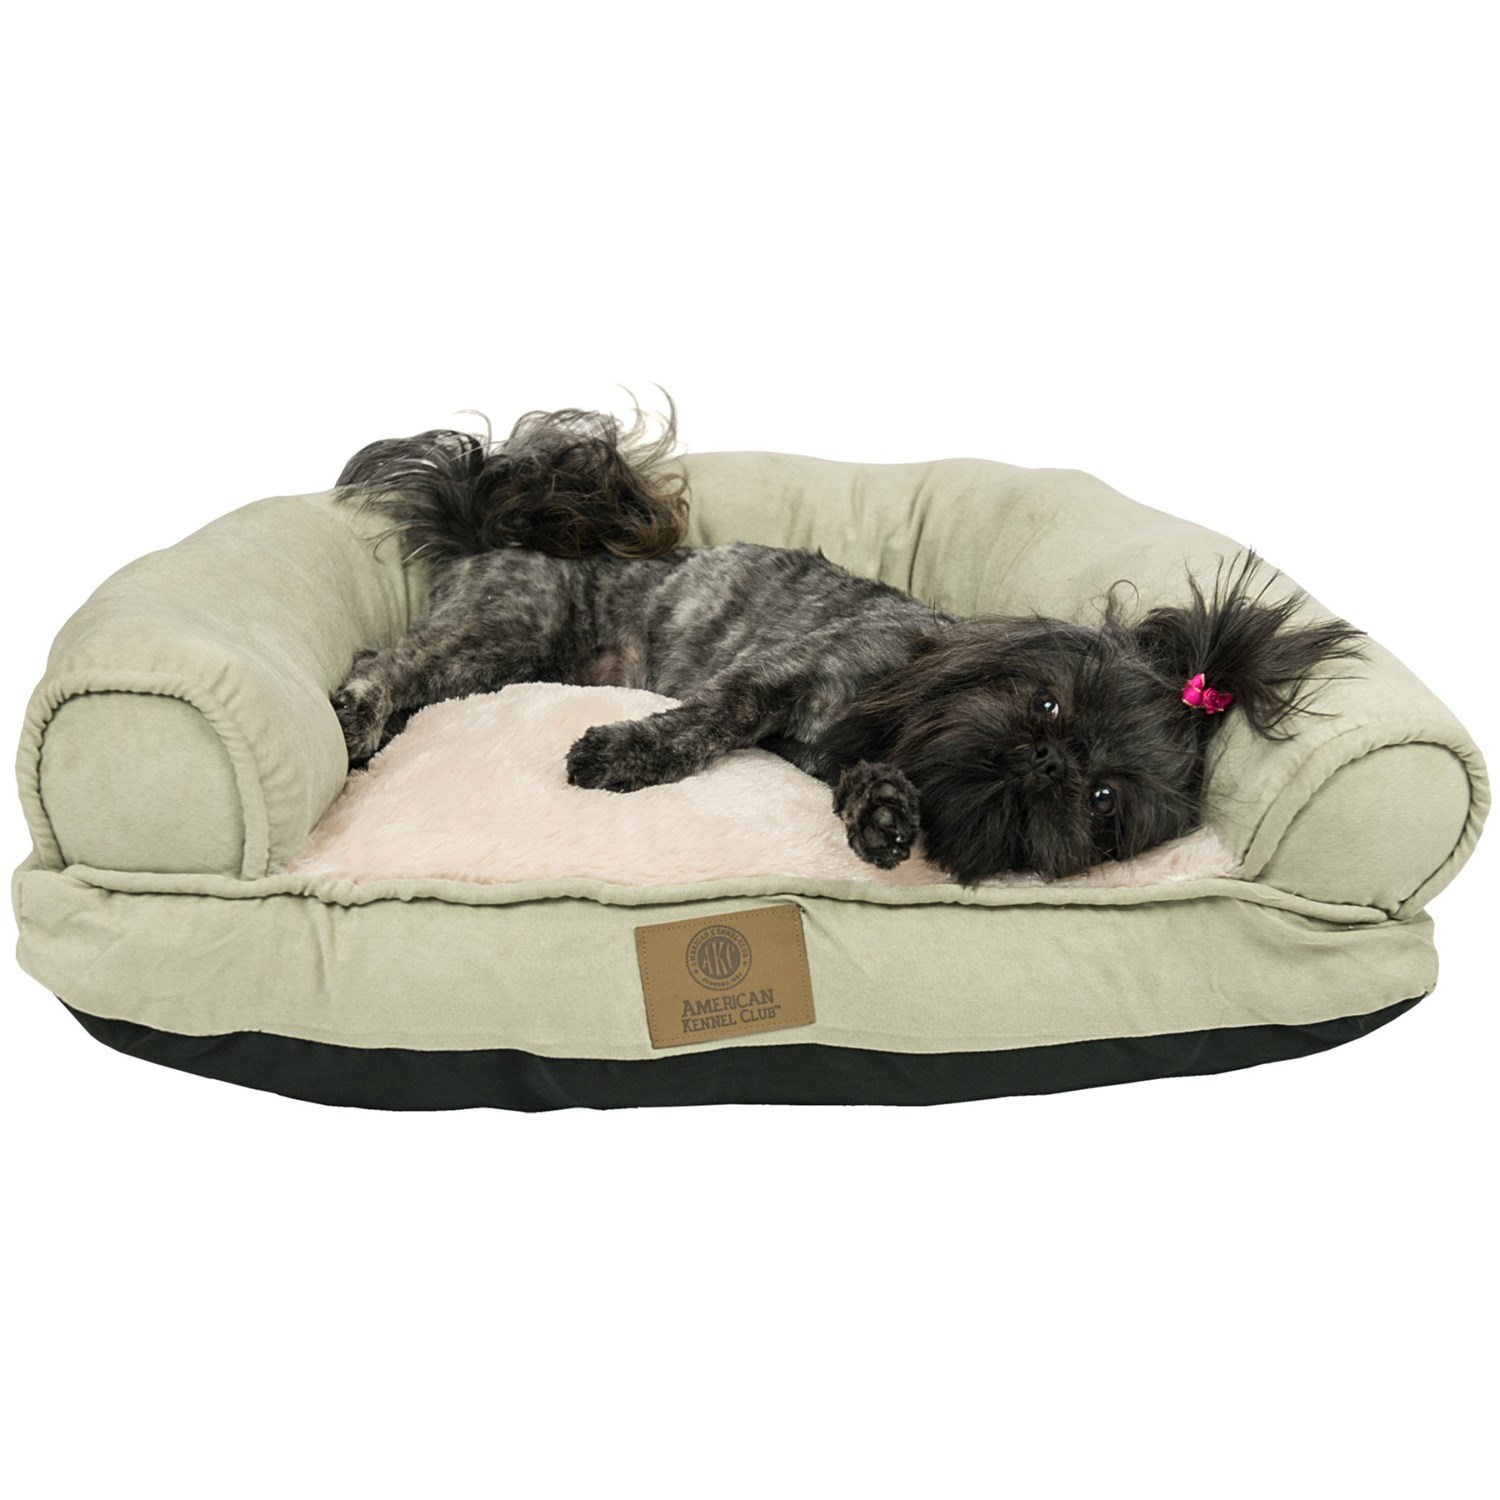 Akc Pet Couch Bed 10x26x22 Save 75